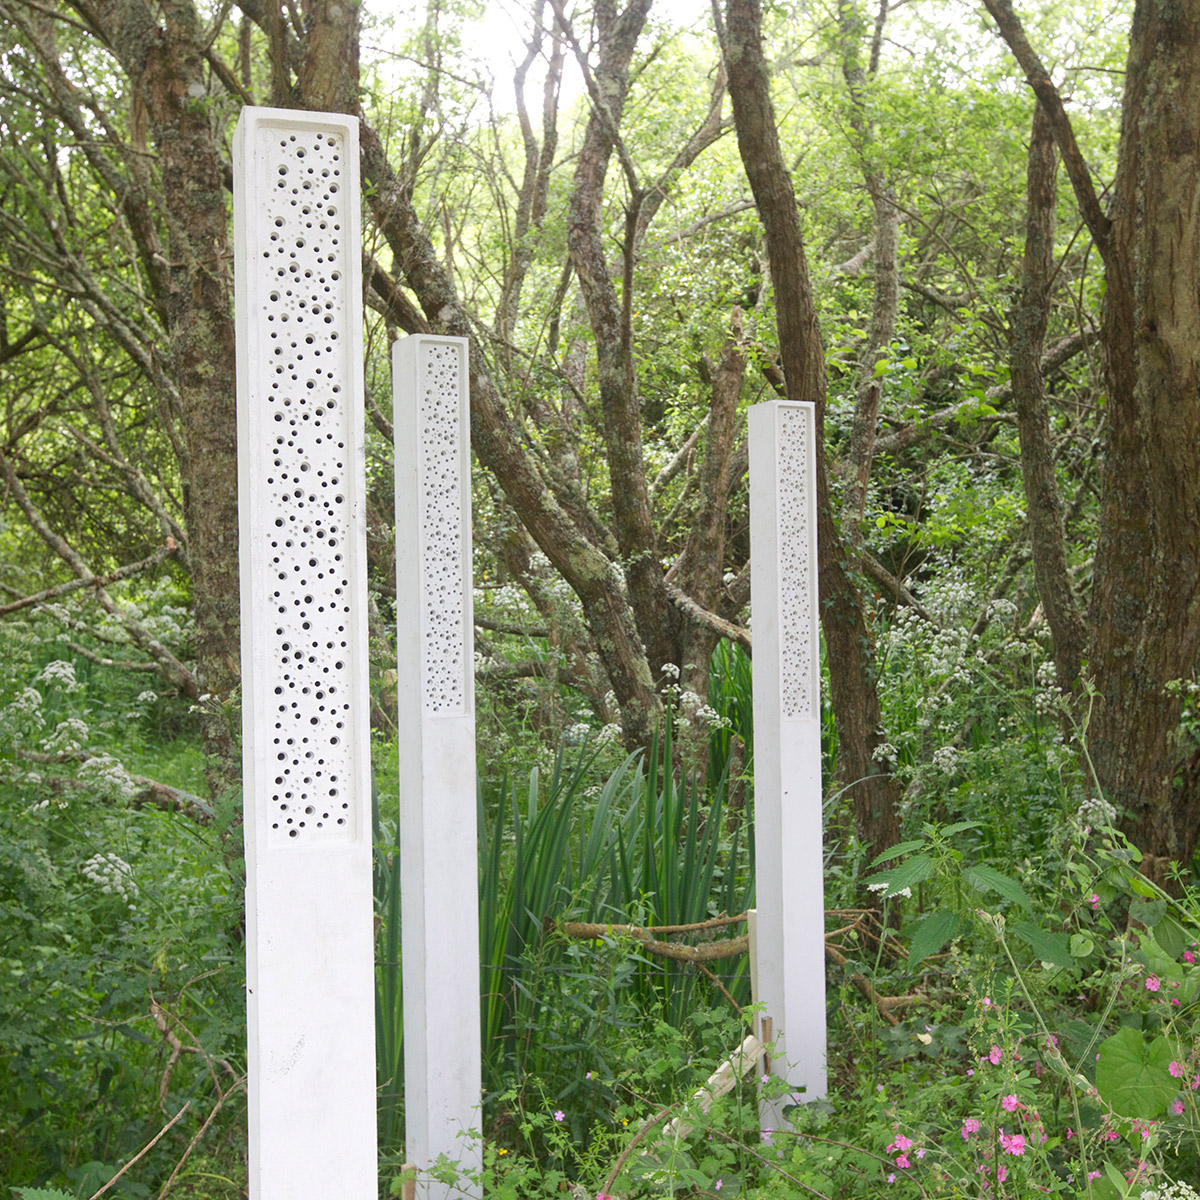 beepost bee towers in forest land landscaping